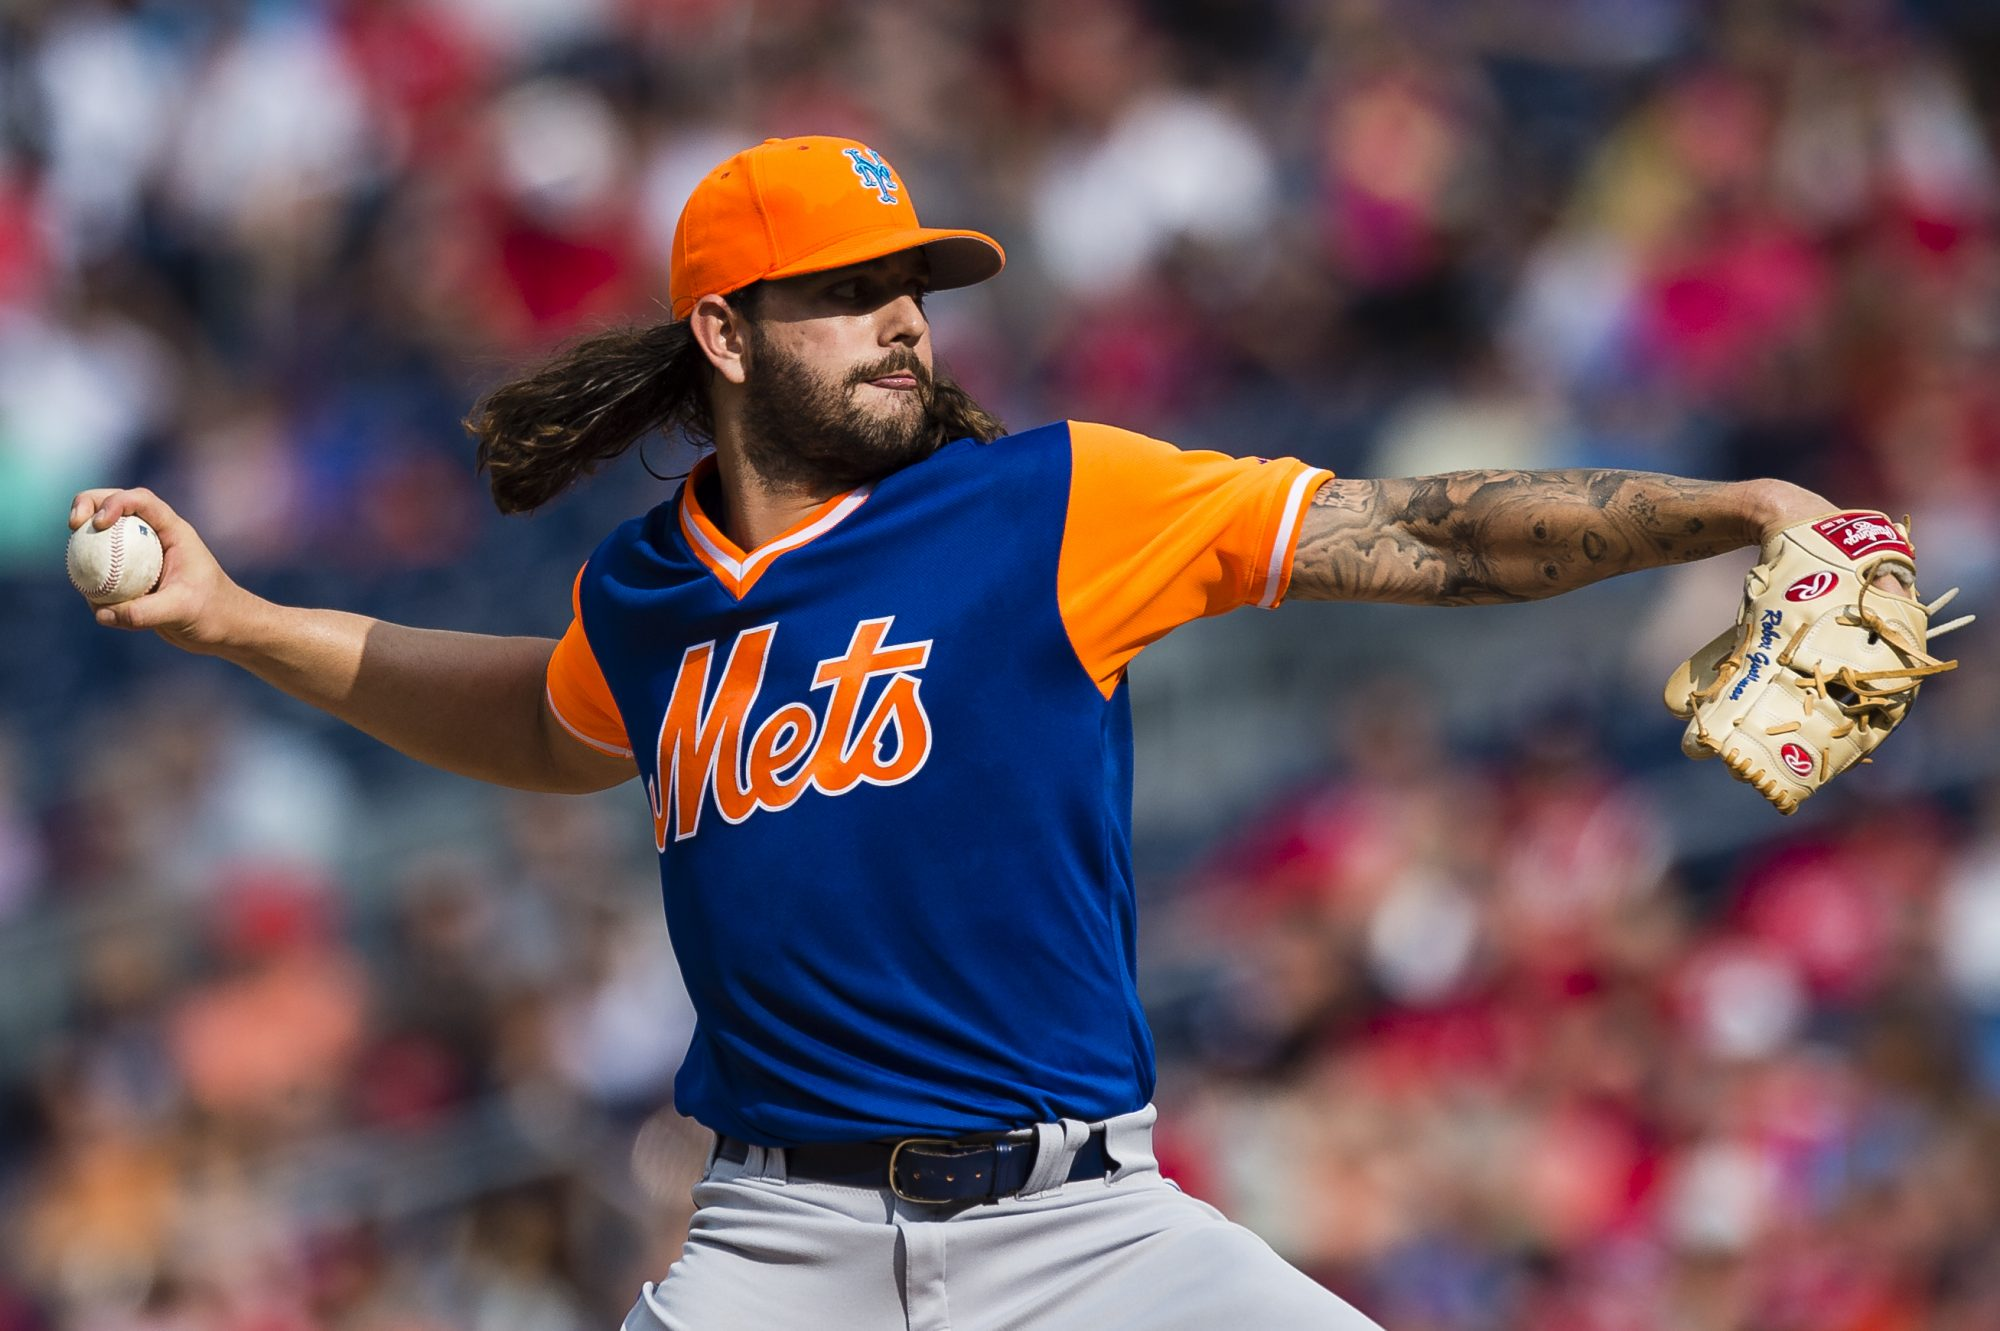 New York Mets Amazin' News 9/2/17: Pats On The Back and Promotions Galore